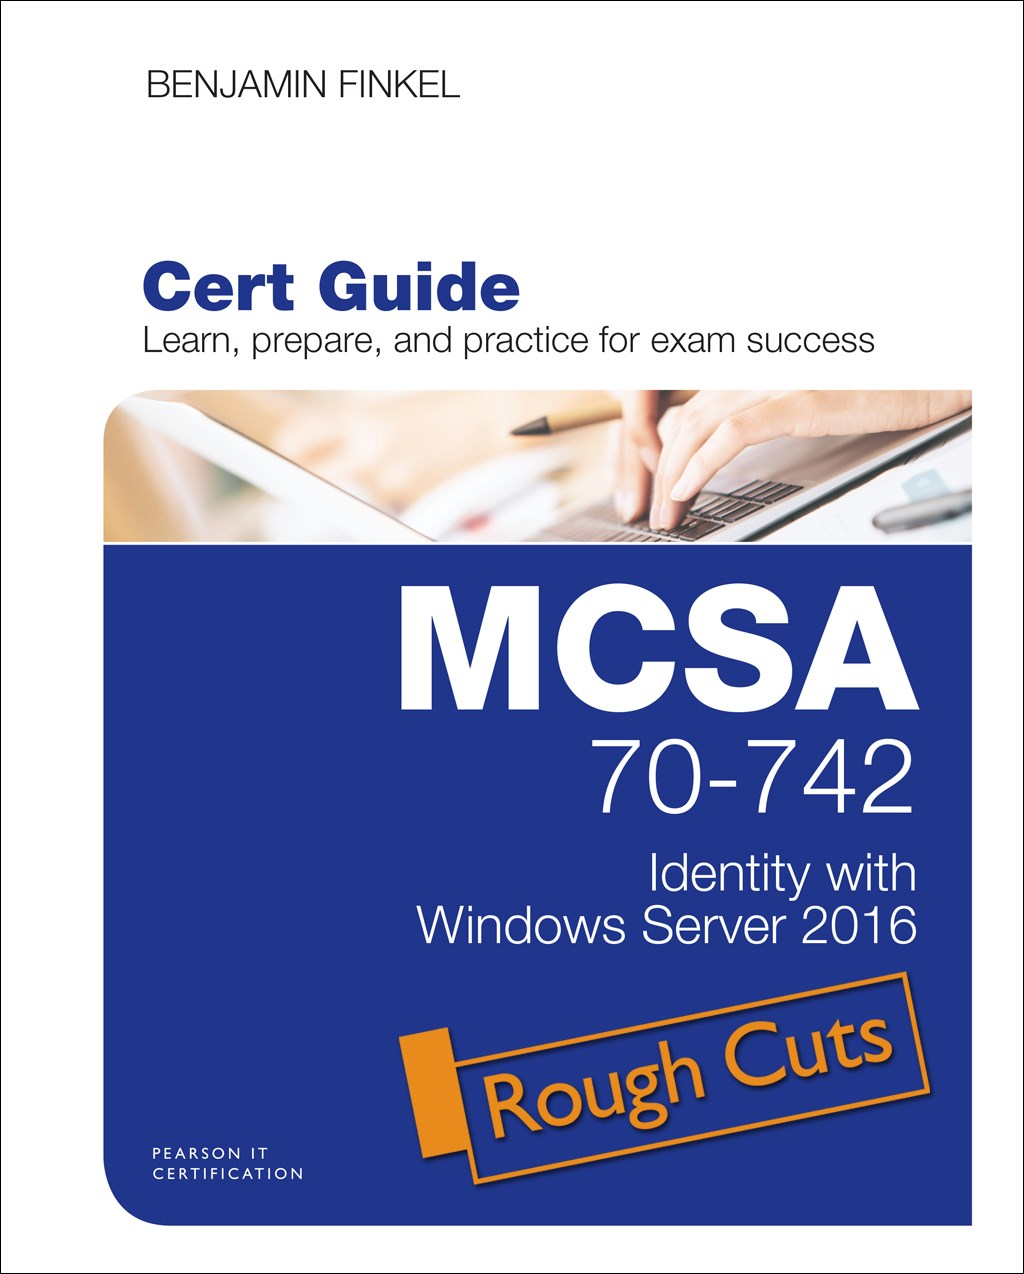 MCSA 70-742 Cert Guide: Identity with Windows Server 2016, Rough Cuts